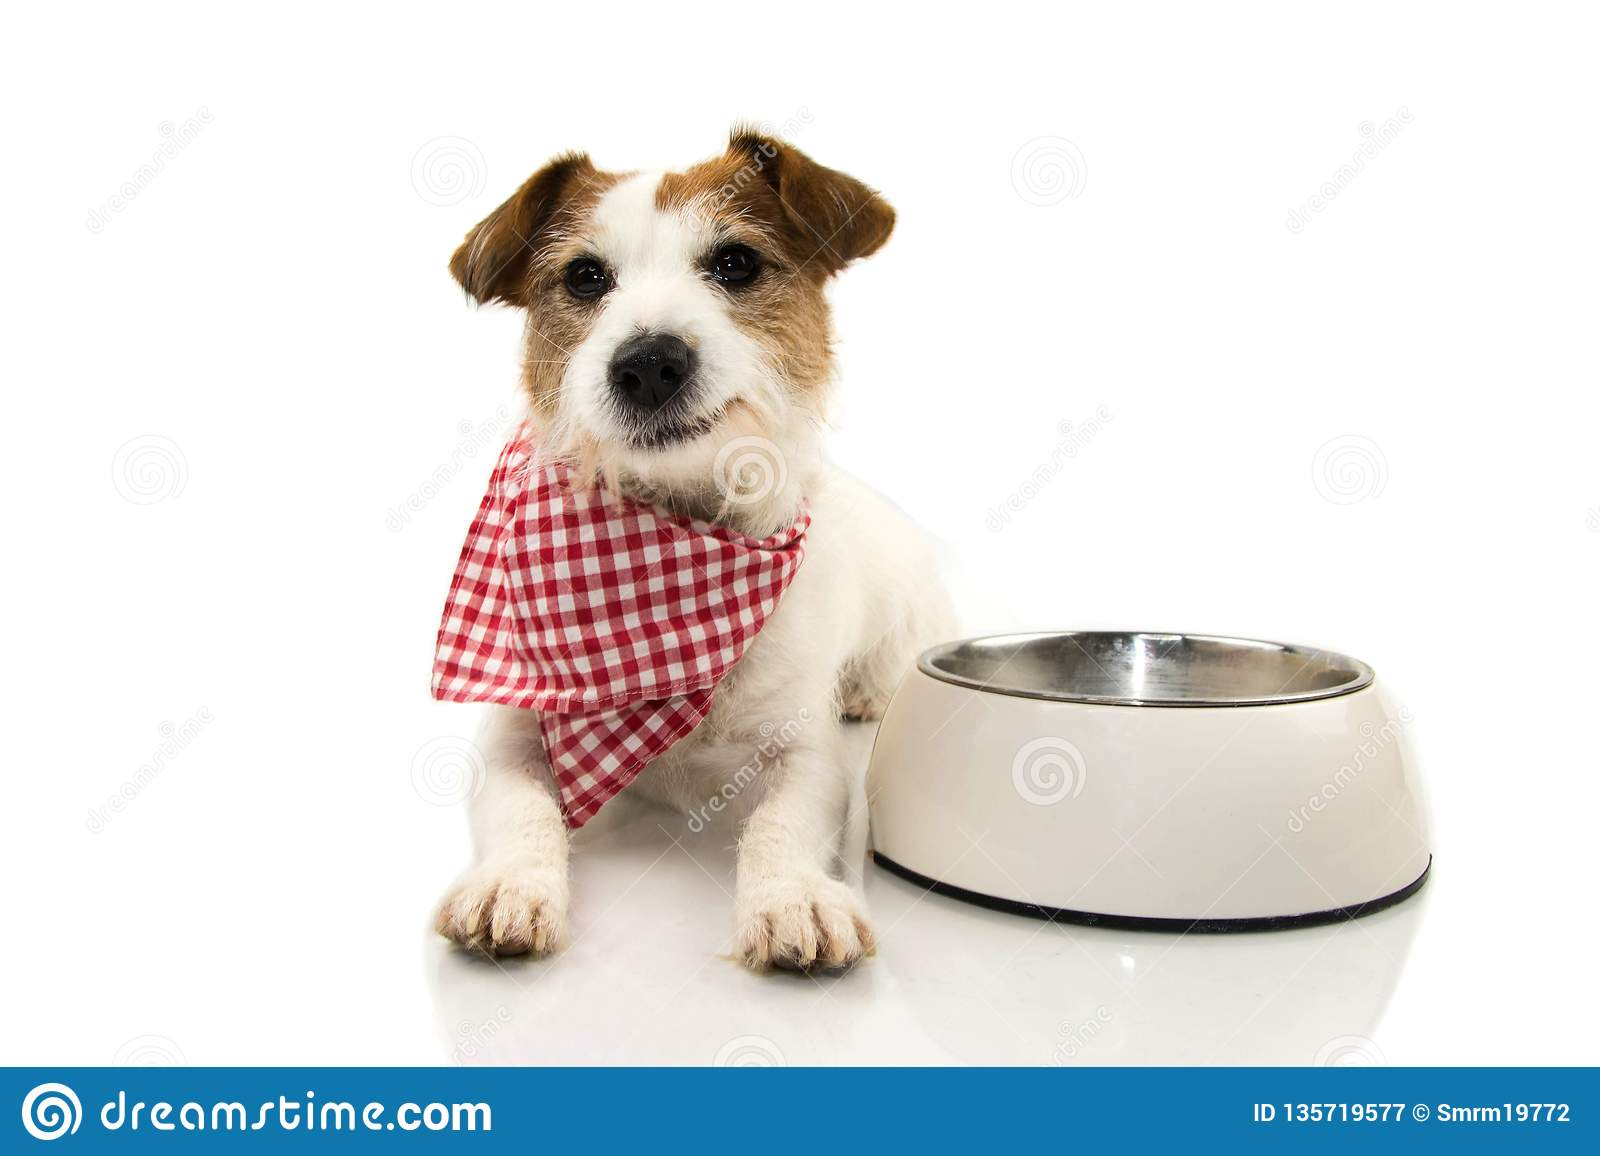 HAPPY DOG EATING FOOD. JACK RUSSELL SMILING WITH A CHECKERED NAPKIN LYING DOWN NEXT TO A EMPTY BOWL. ISOLATED SHOT AGAINST WHITE